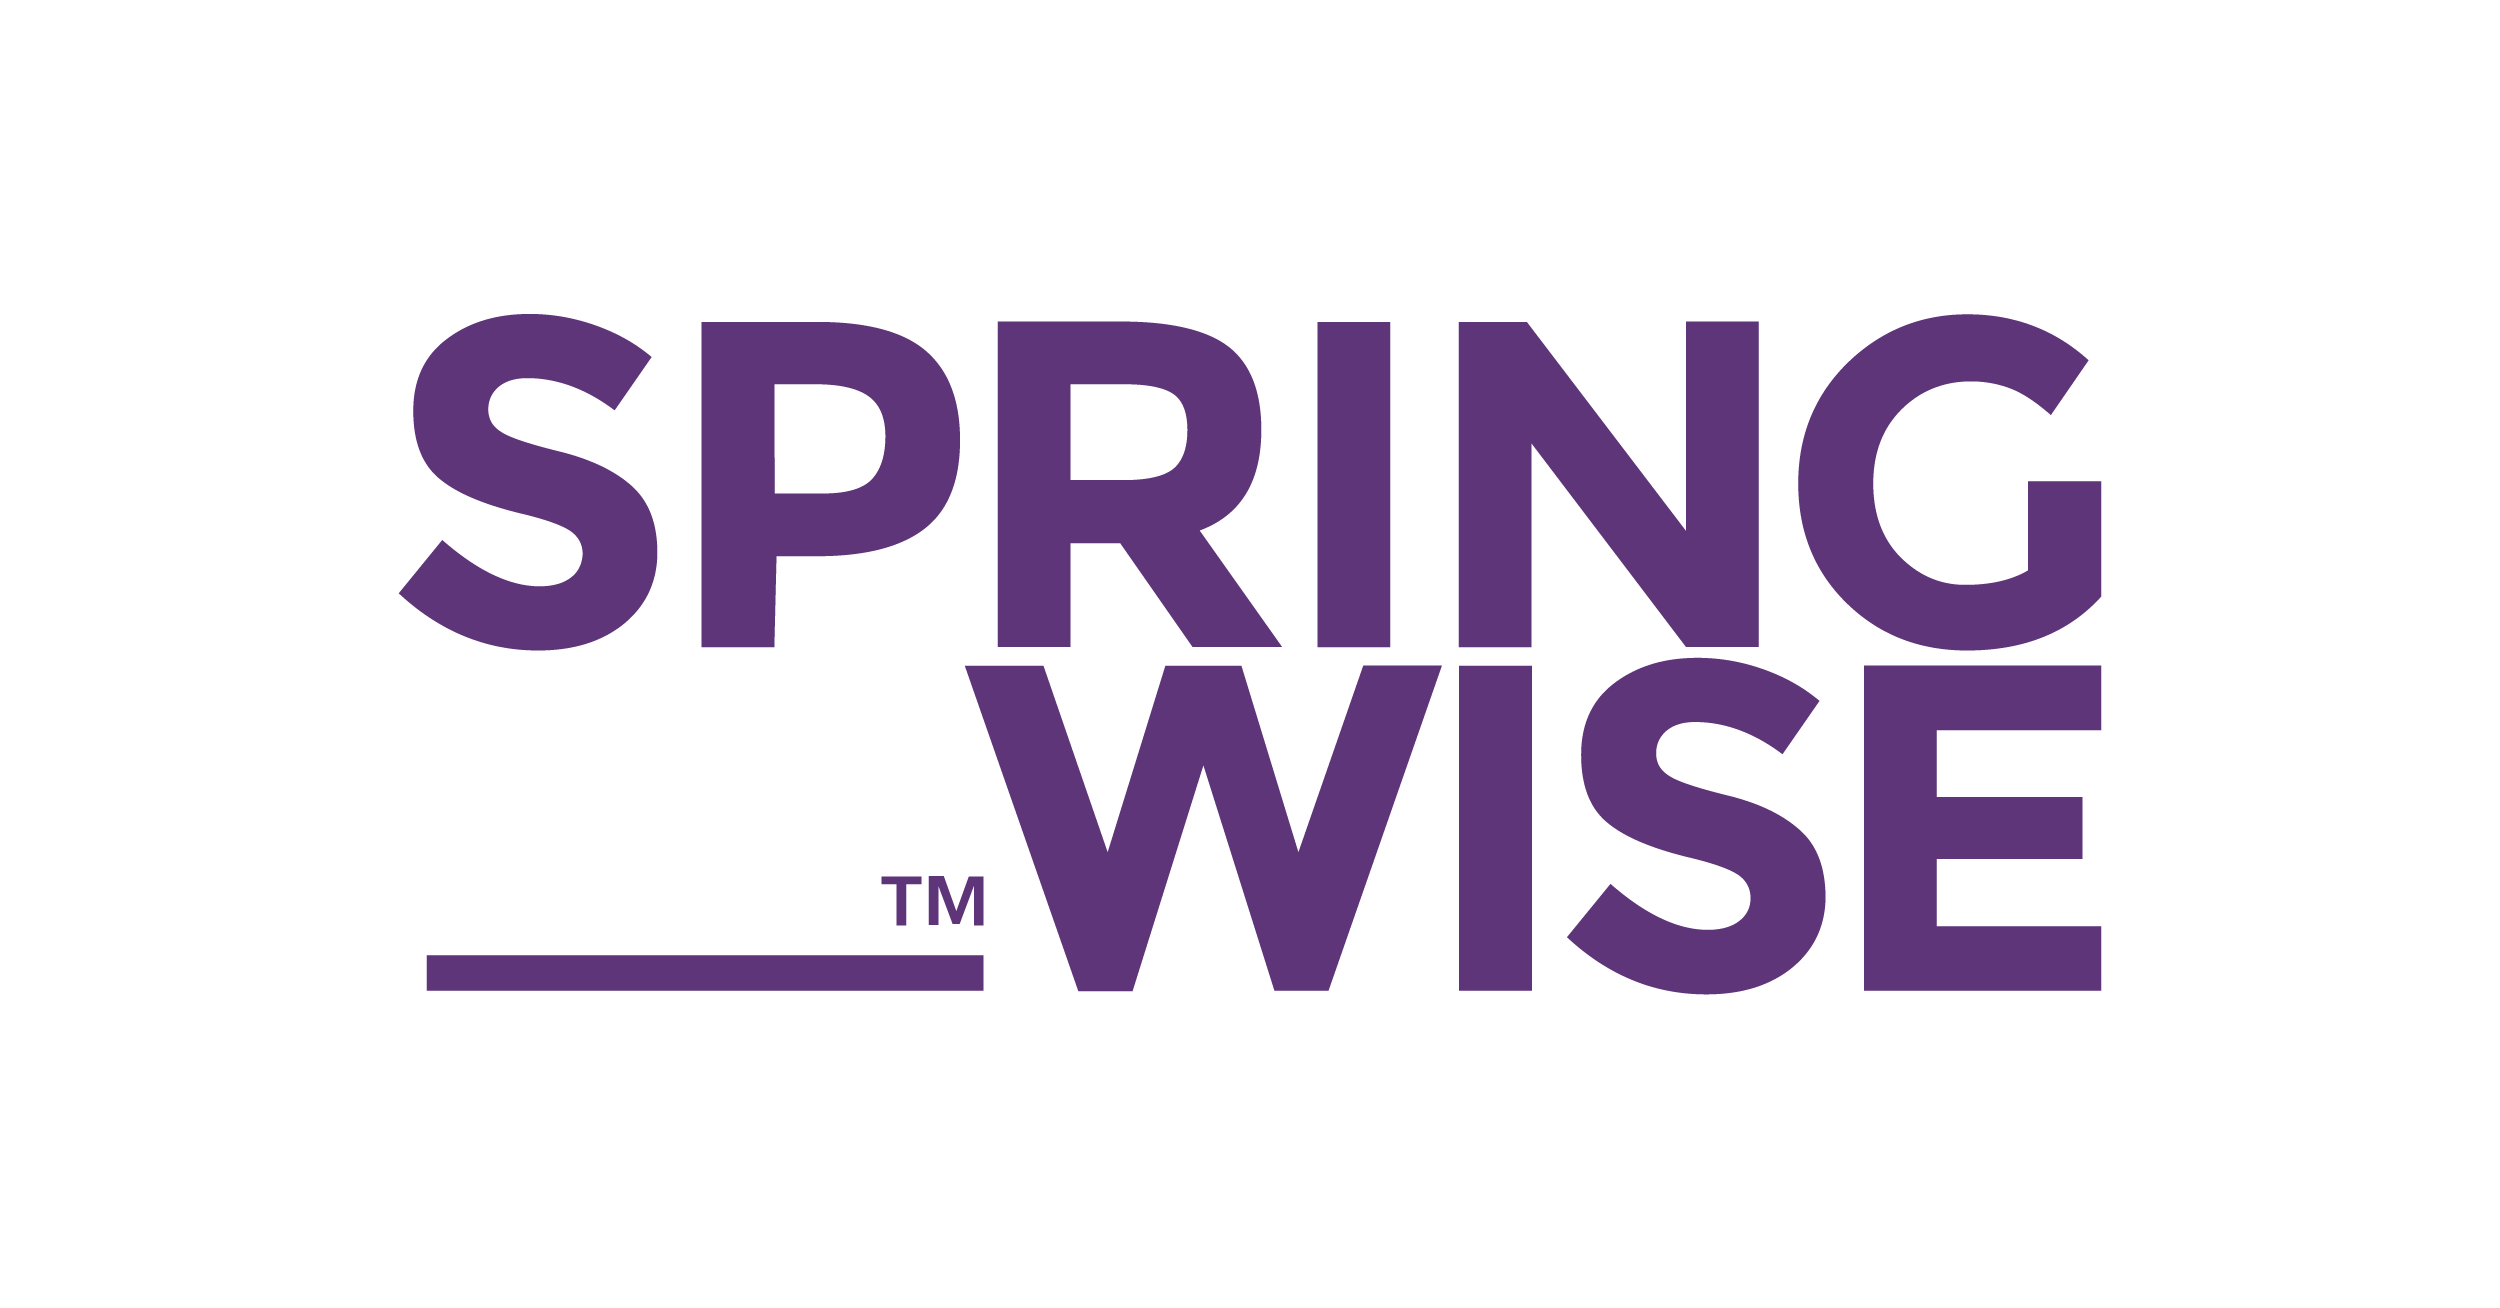 UK based Springwise Intelligence, features inteliLIGHT implementation in Brescia, Italy, in sustainable innovation category